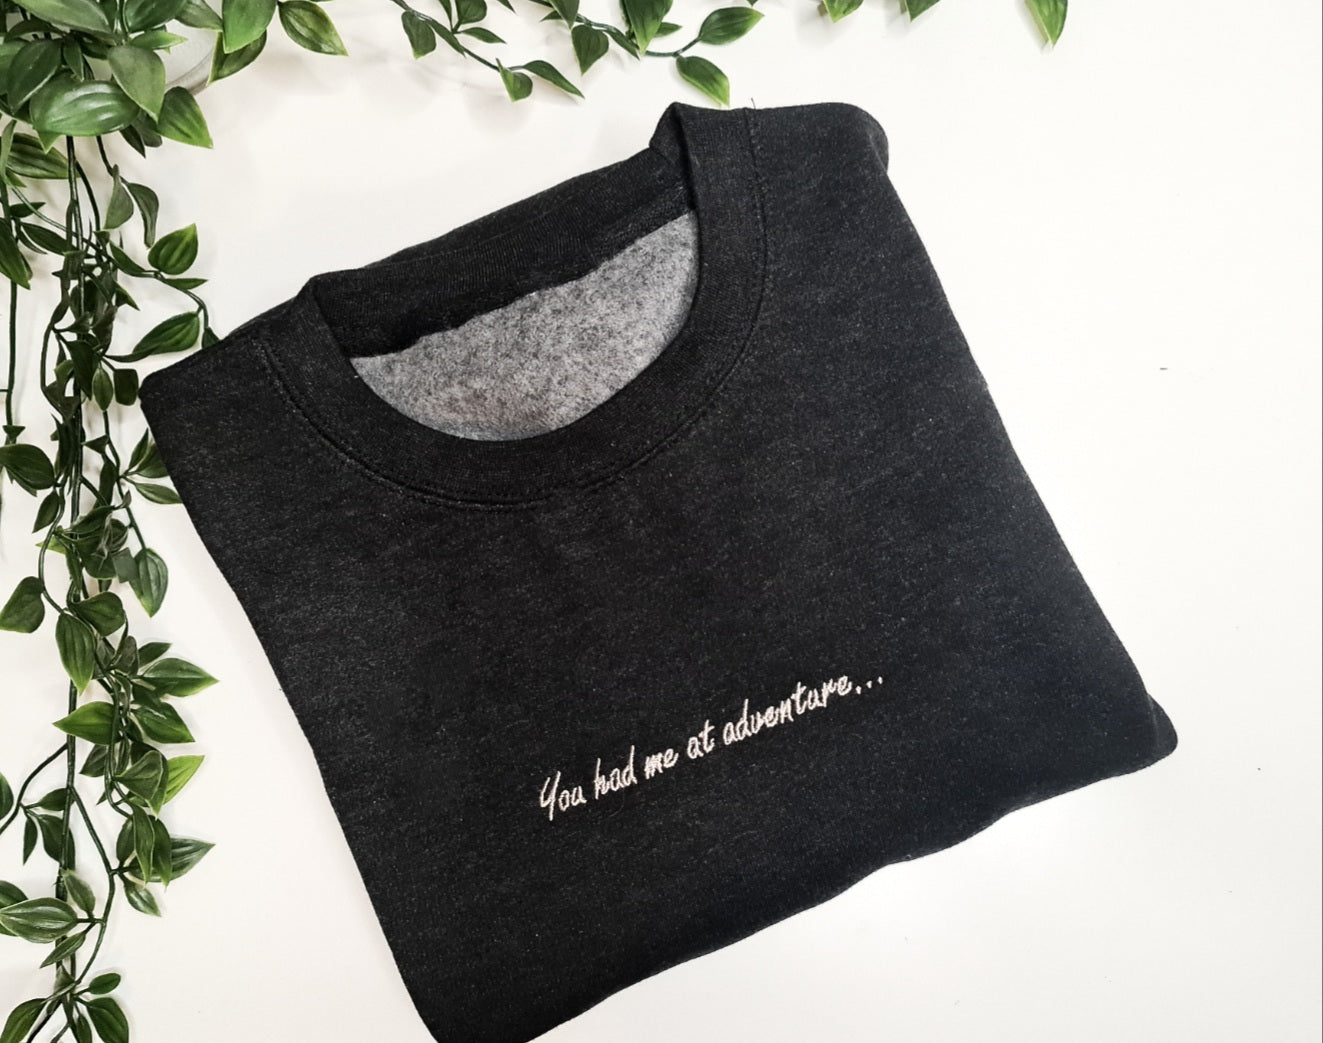 PRE-ORDER Embroidered Sweatshirt - You had me at adventure... (light black) UNISEX